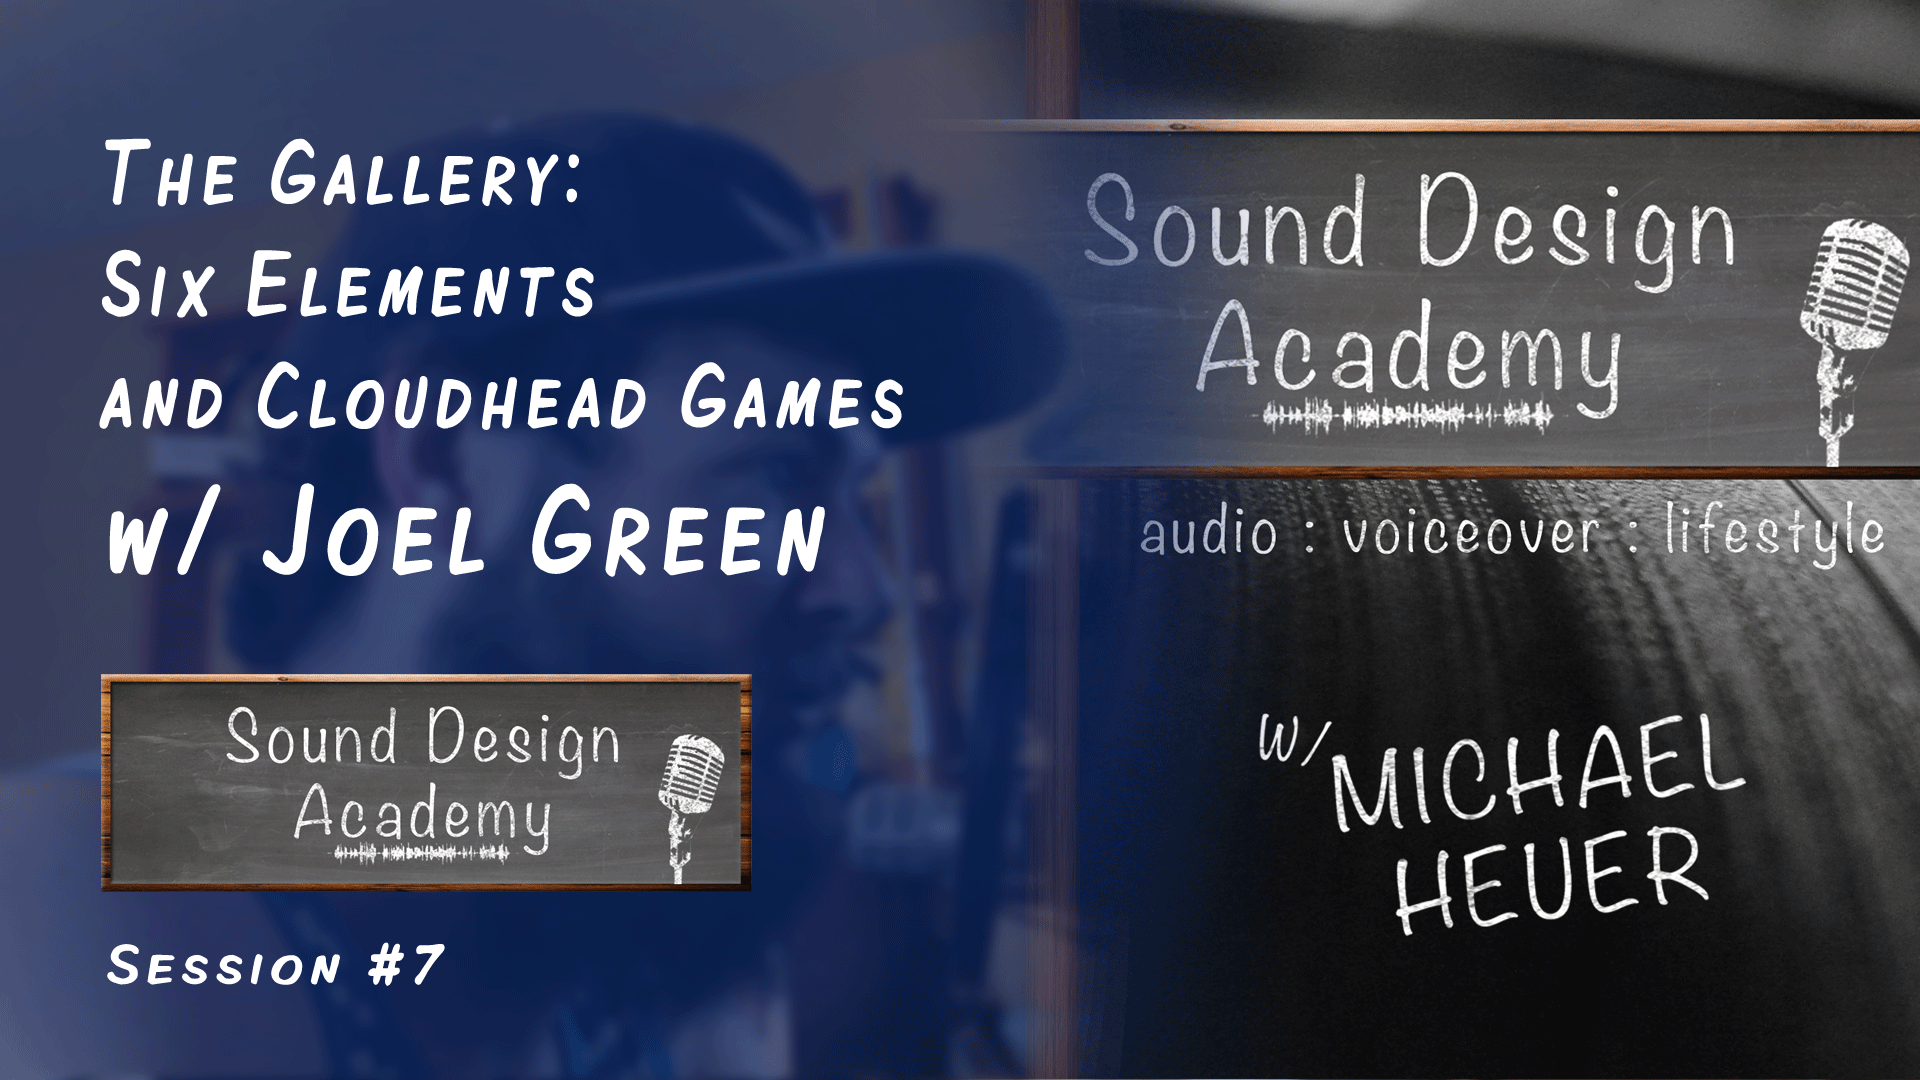 sound design academy - the gallery: six elements and cloudhead games with Joel Green